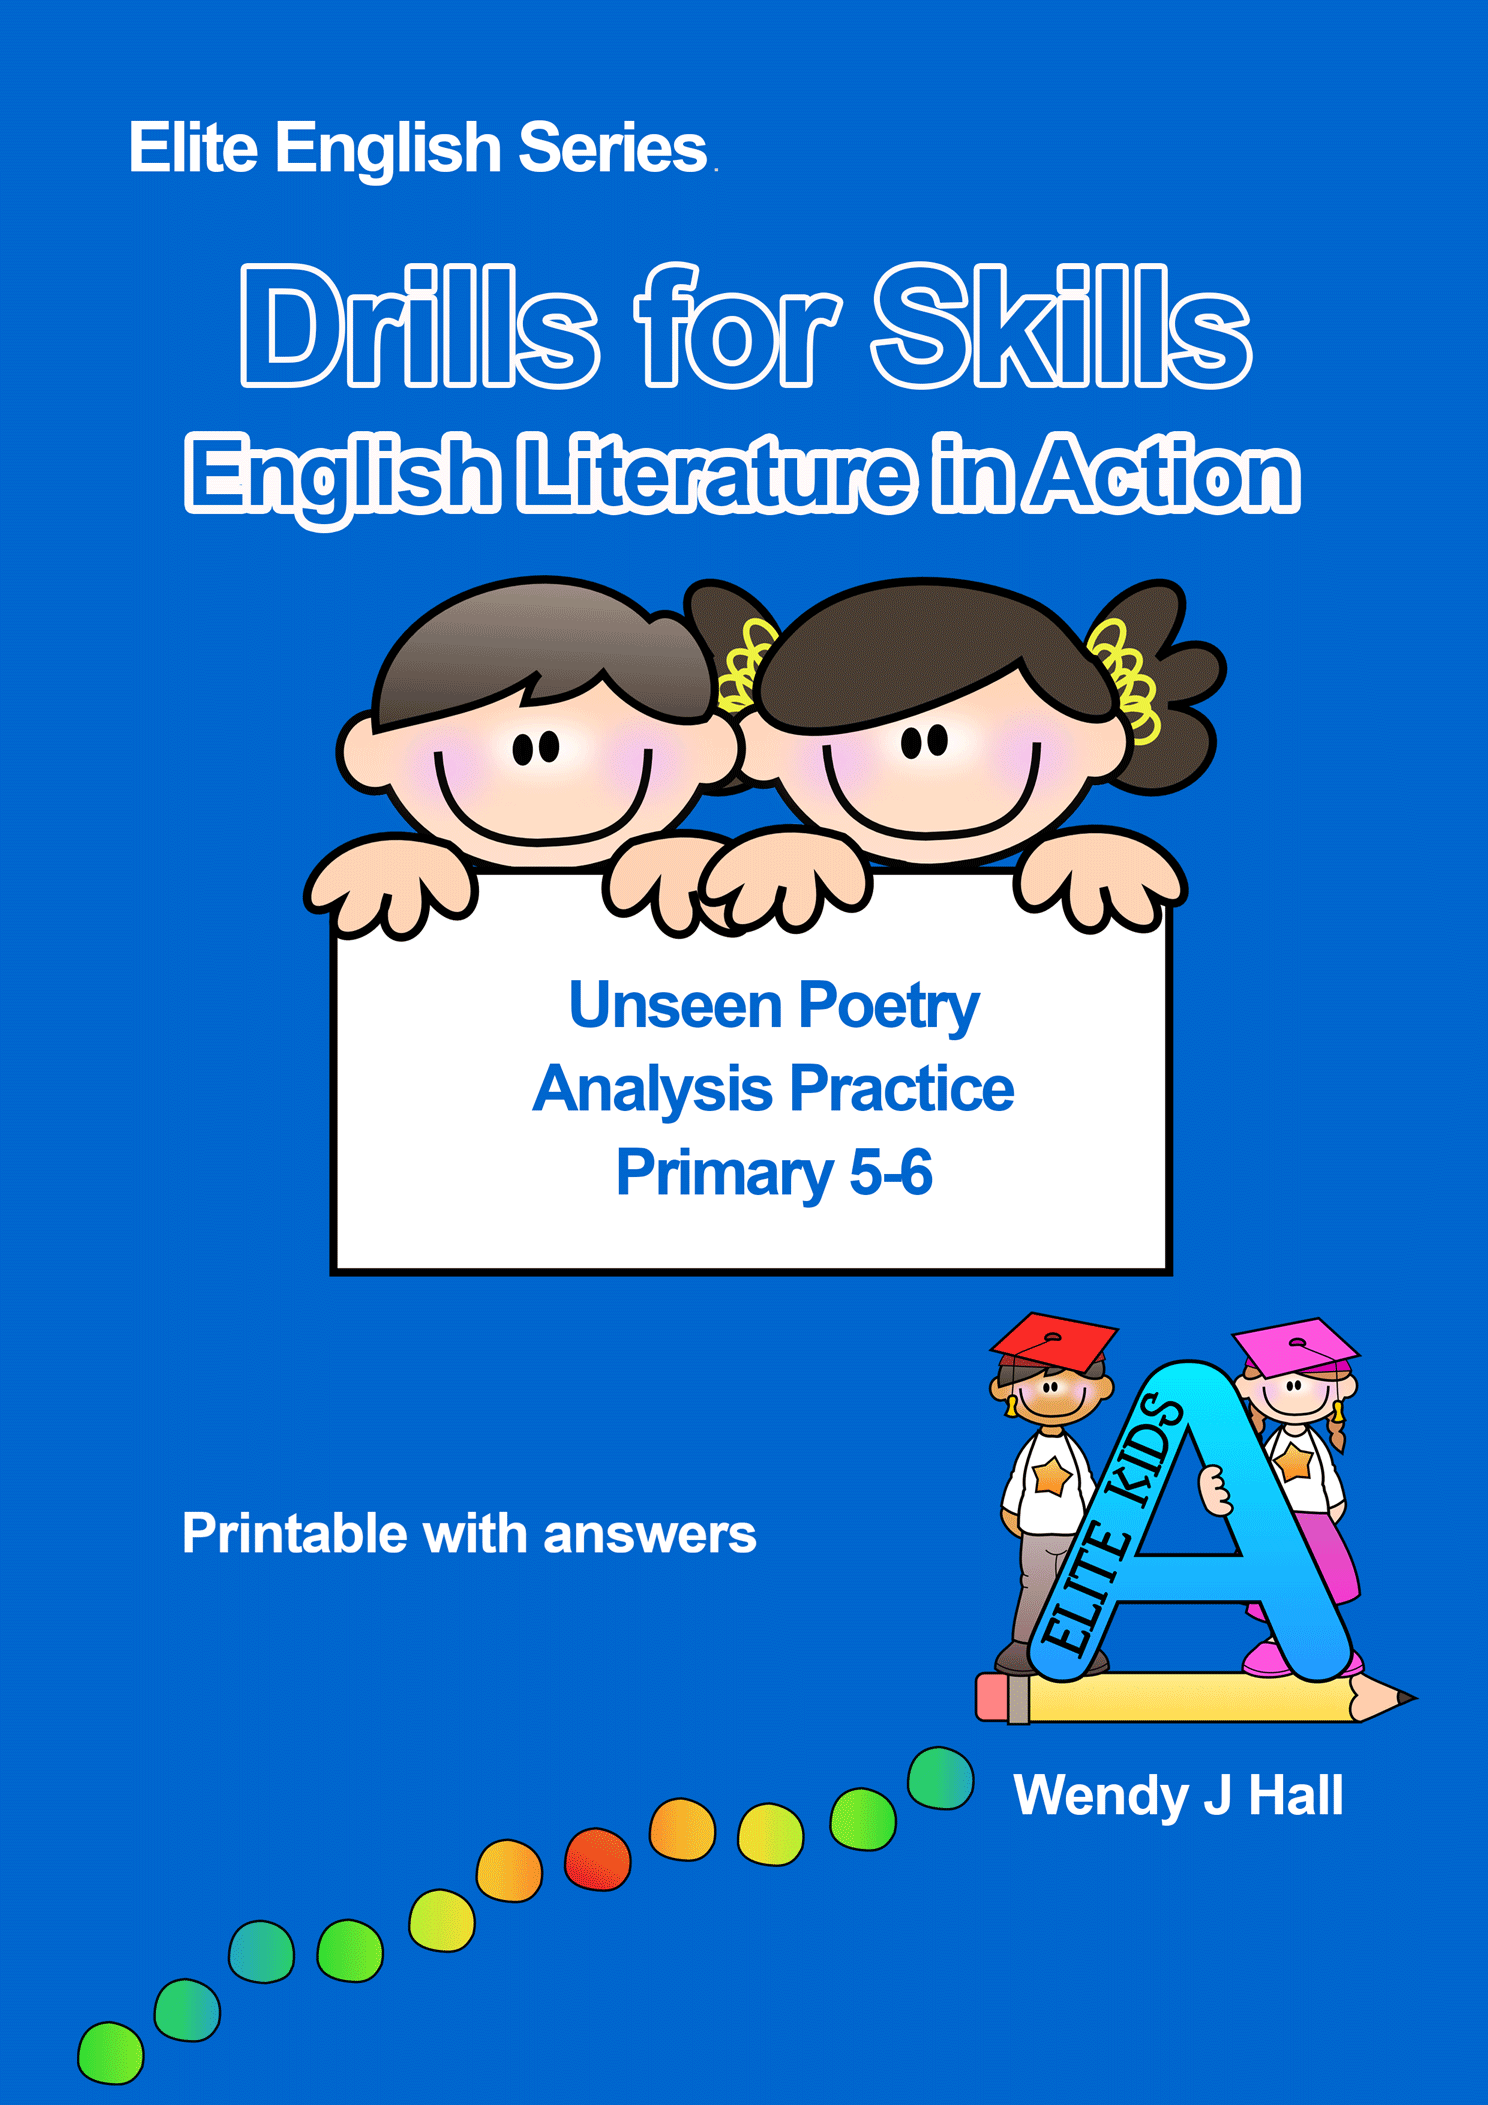 Unseen Poems